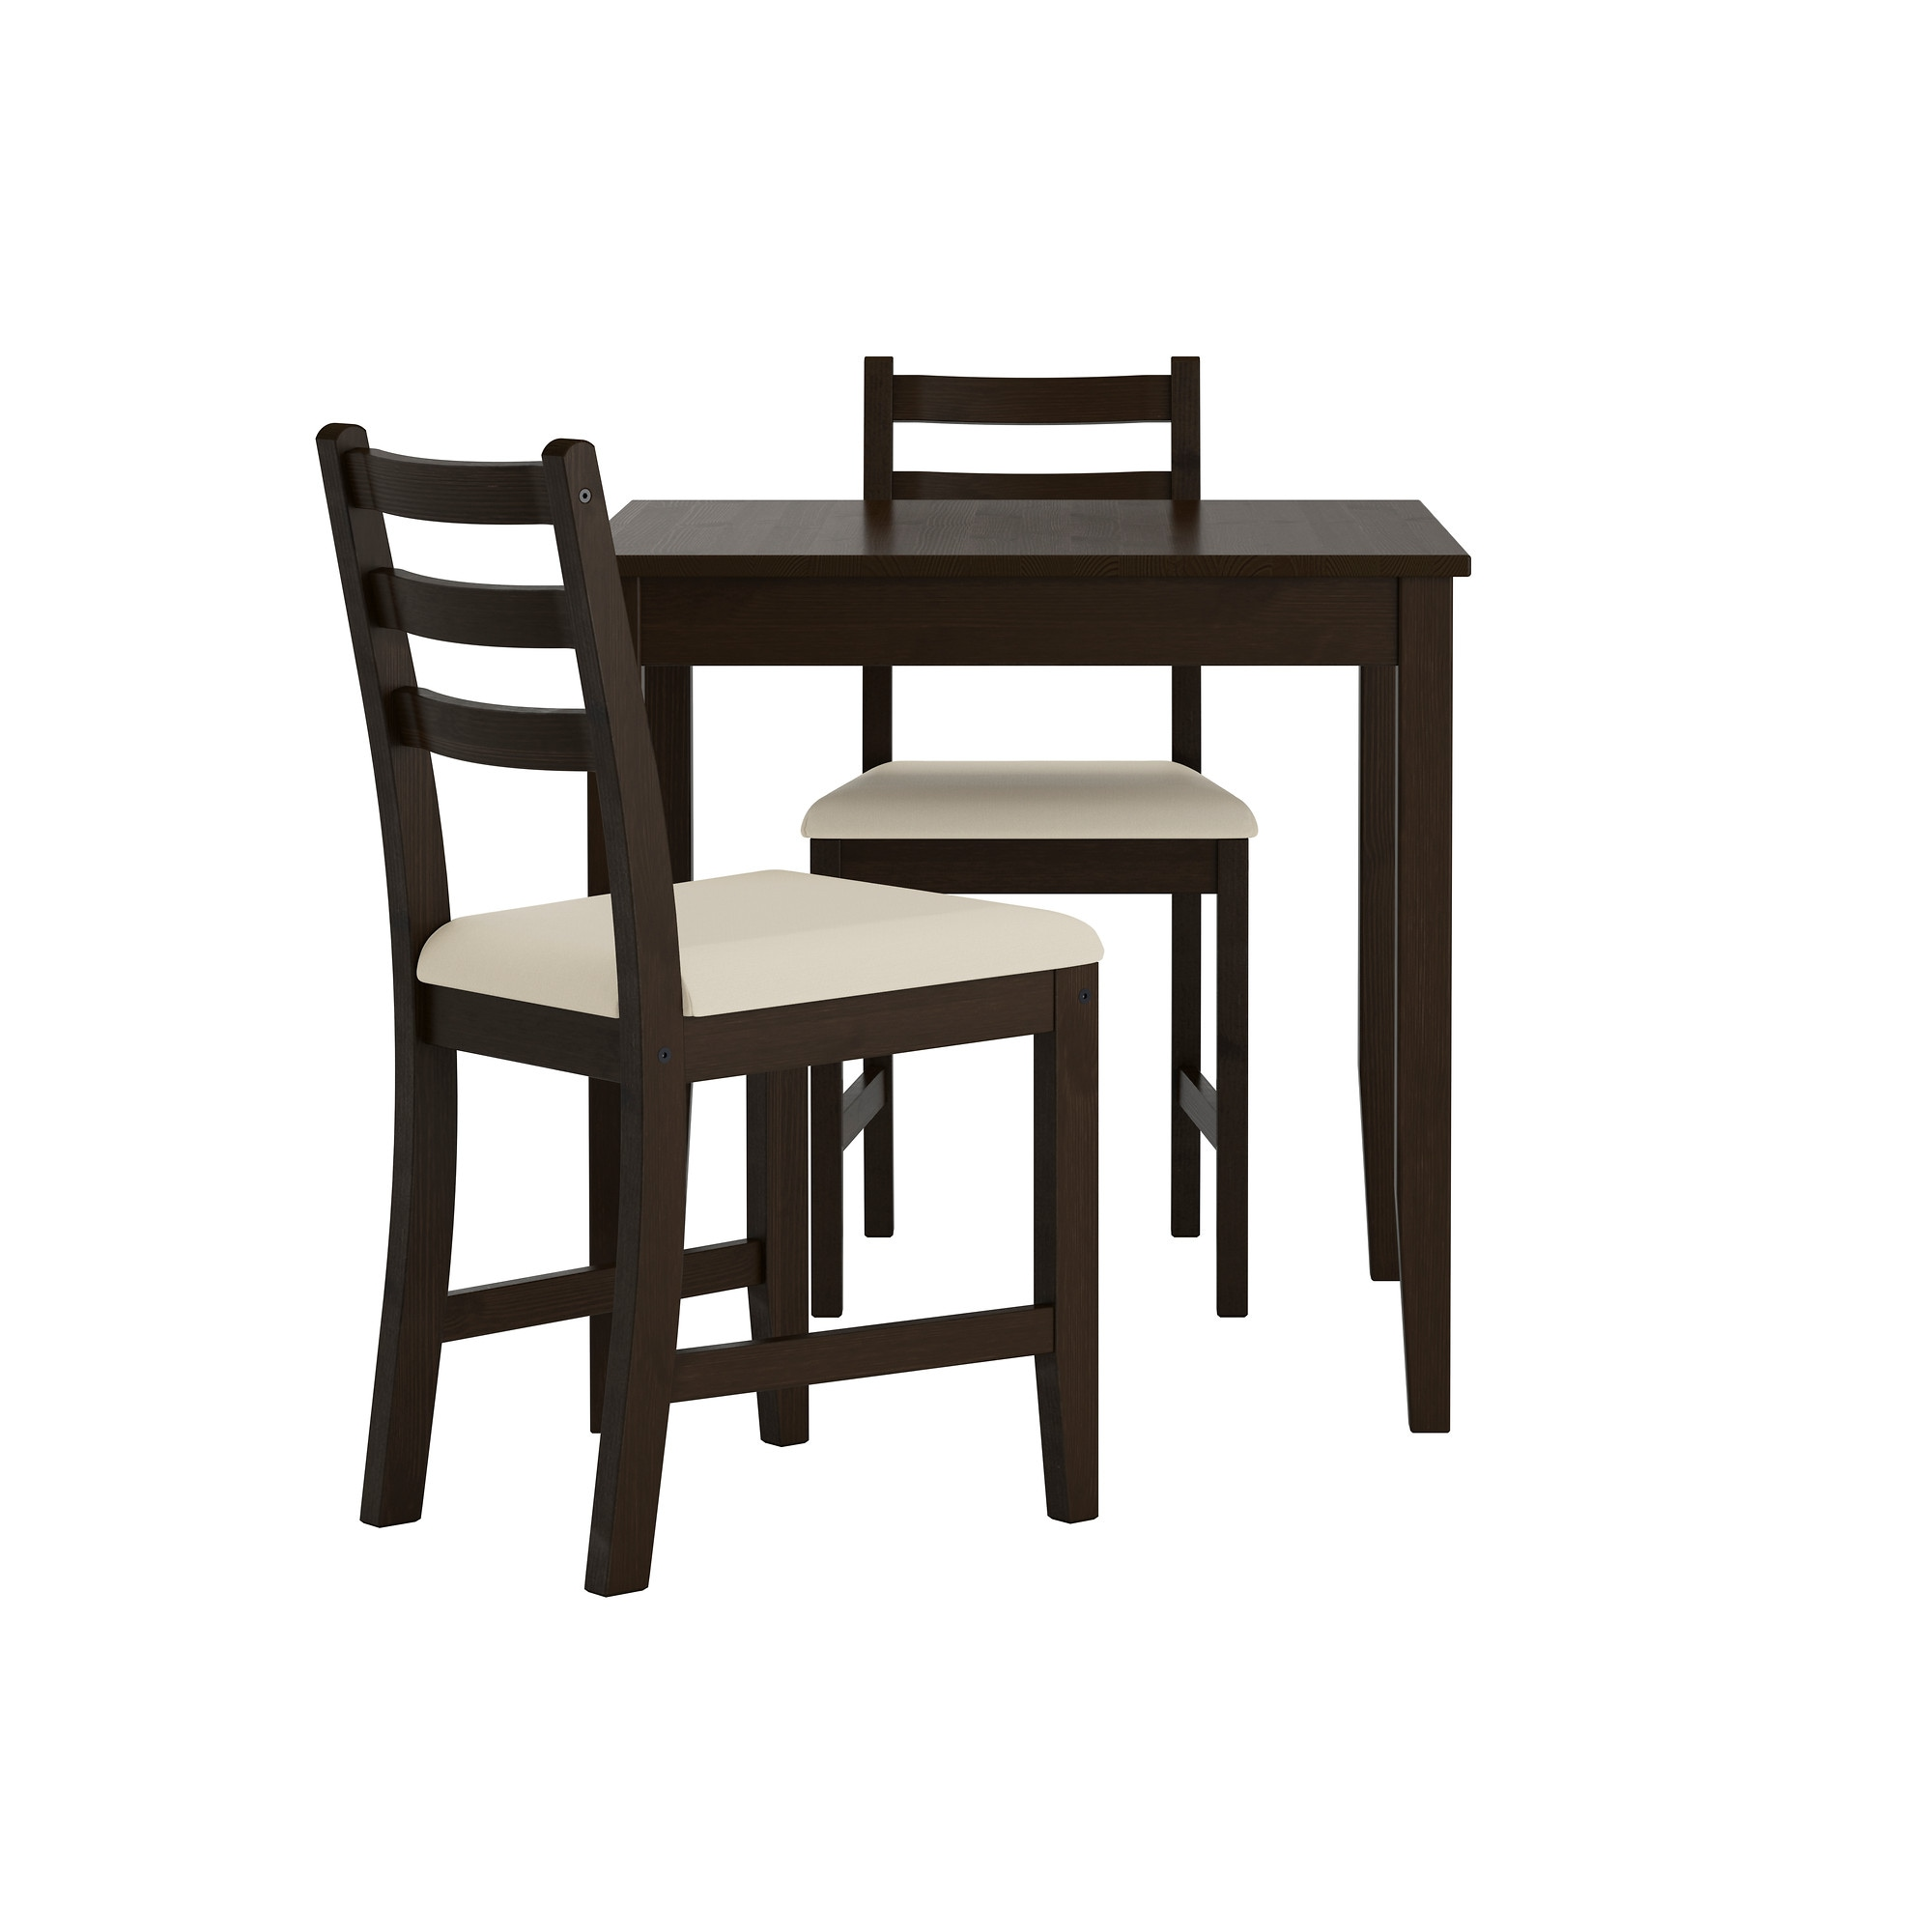 Ordinary Kitchen Table And Chairs Ikea #3: LERHAMN Table And 2 Chairs, Black-brown, Vittaryd Beige Length: 29 1